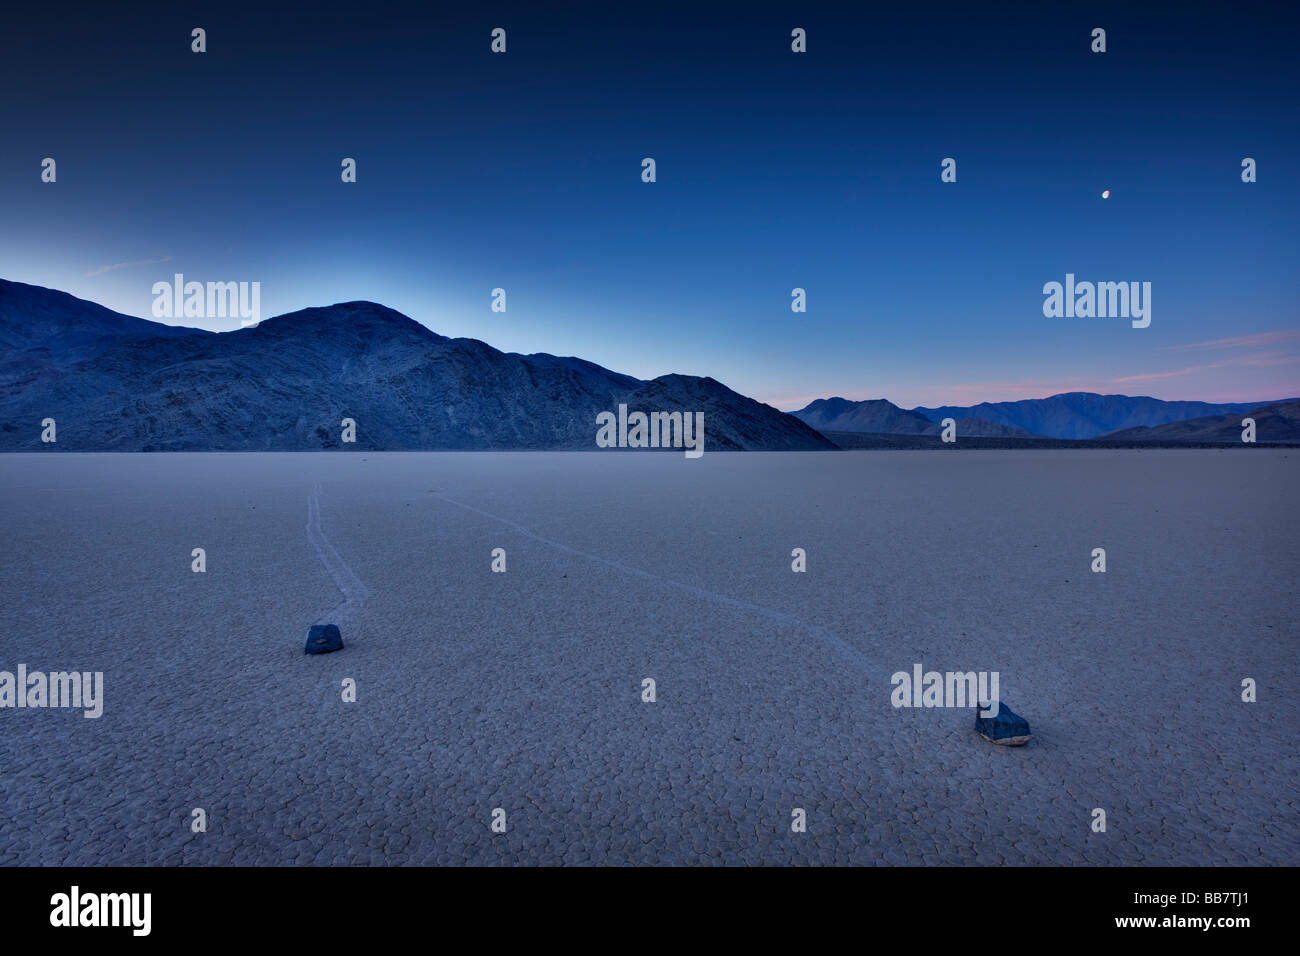 Die Rennstrecke in Death Valley Nationalpark in Kalifornien, USA Stockbild